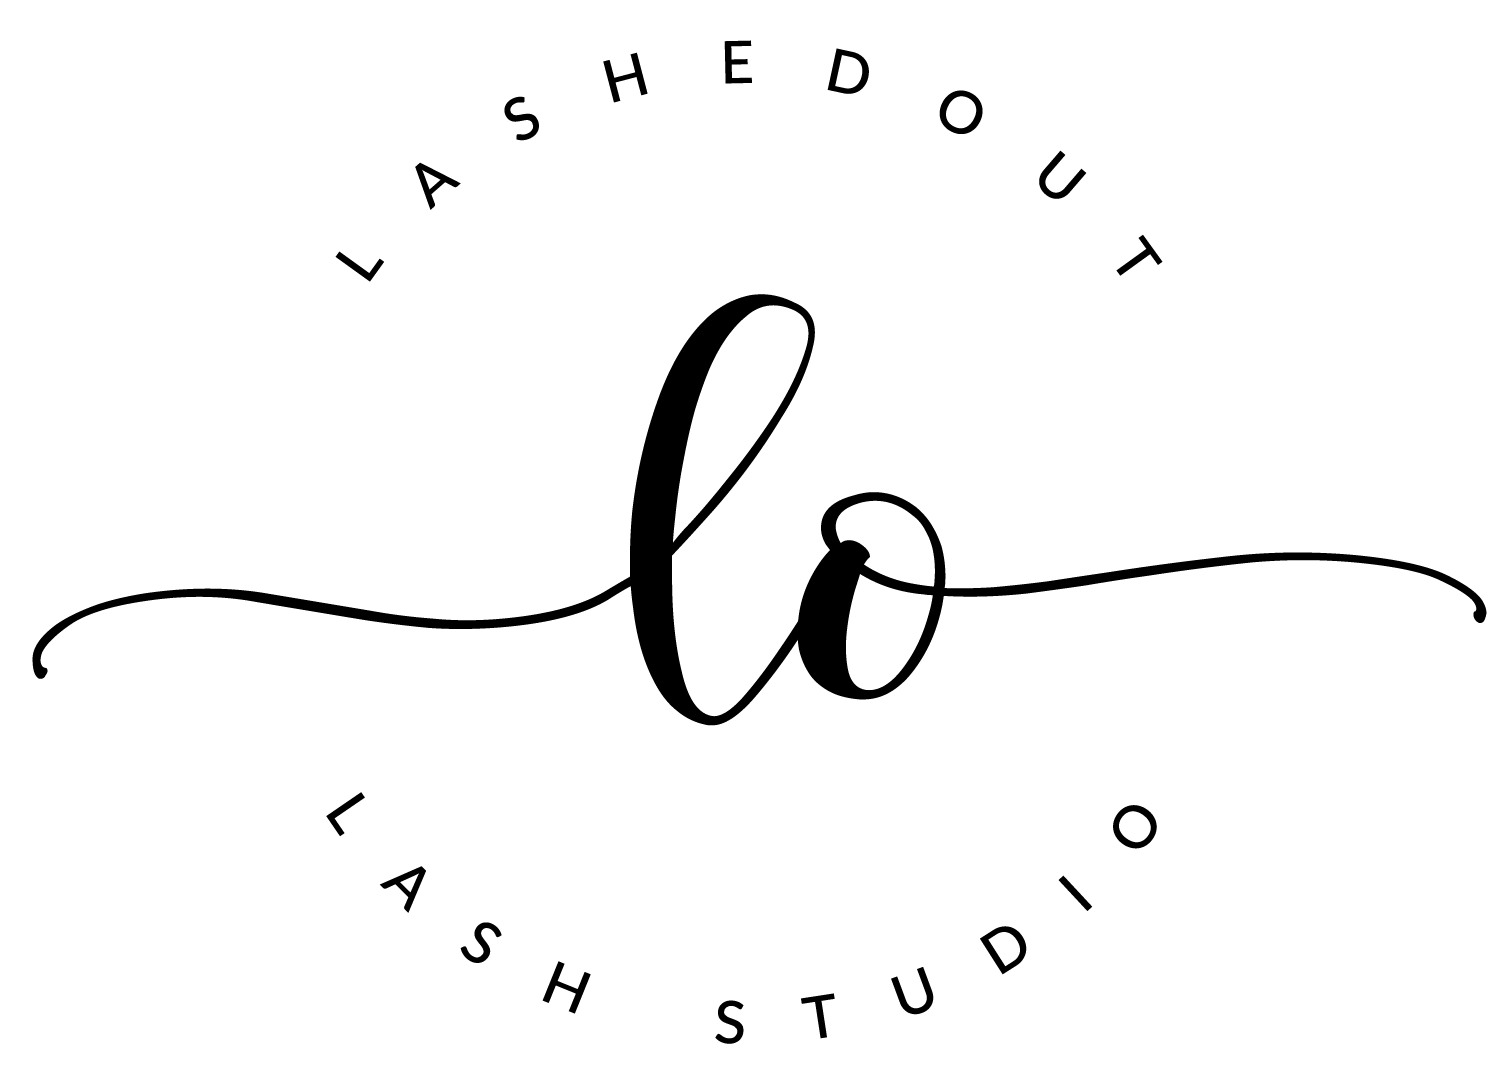 Lashed Out Lash Studio Mink Lashes And Eyelash Extensions